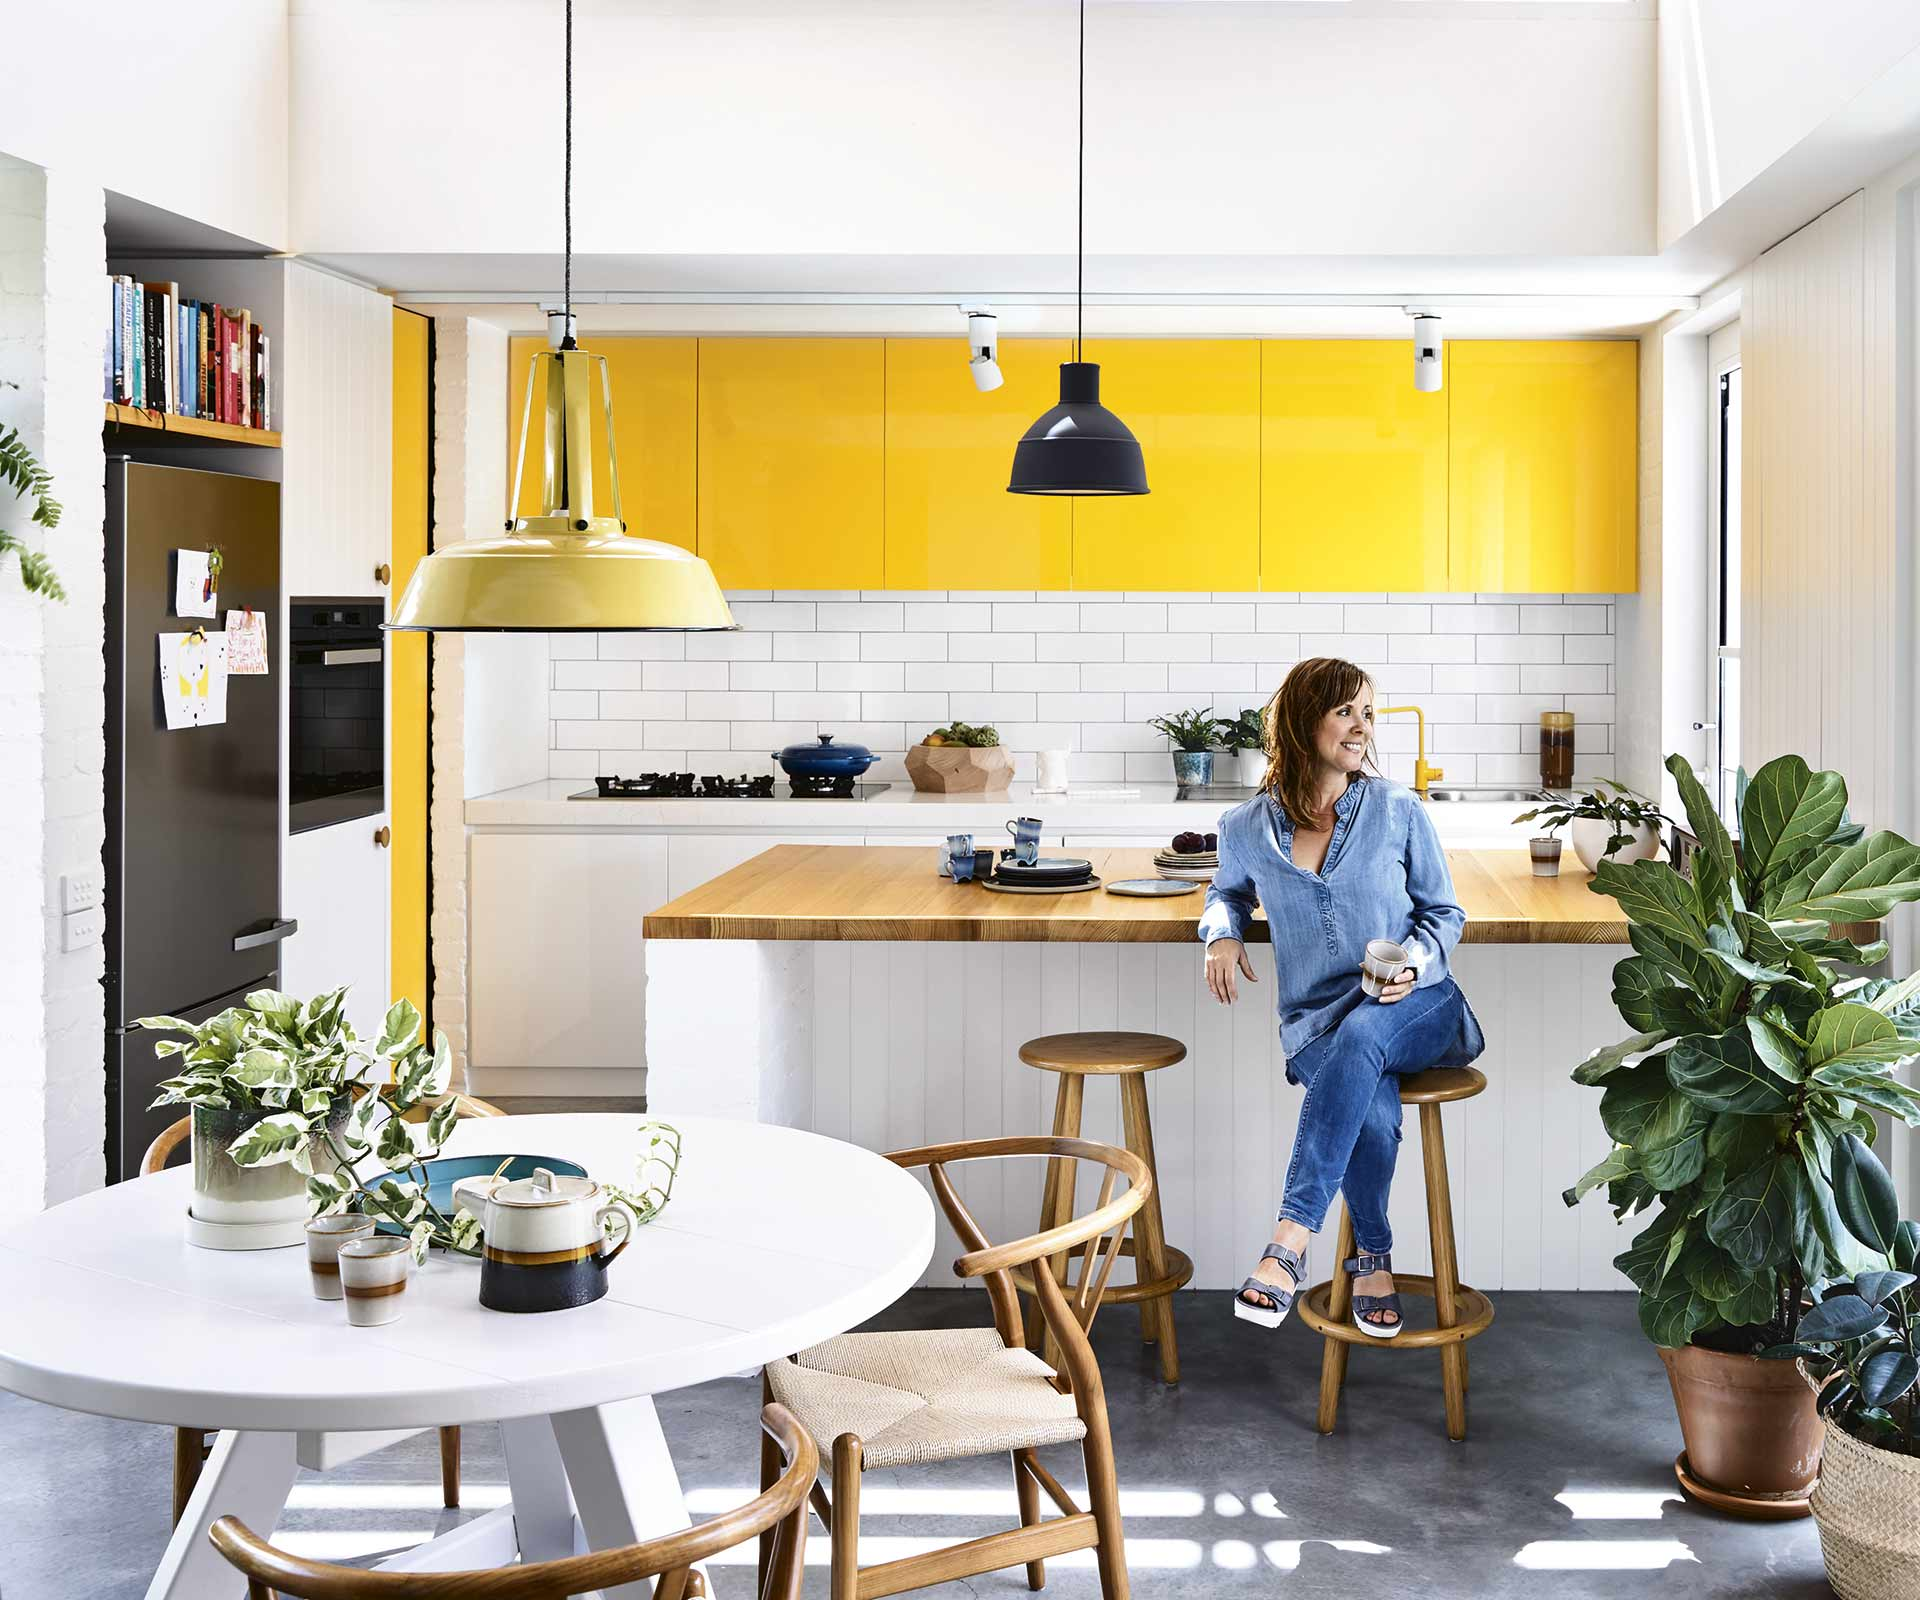 A modernist house with 80s style in Melbourne | Inside Out